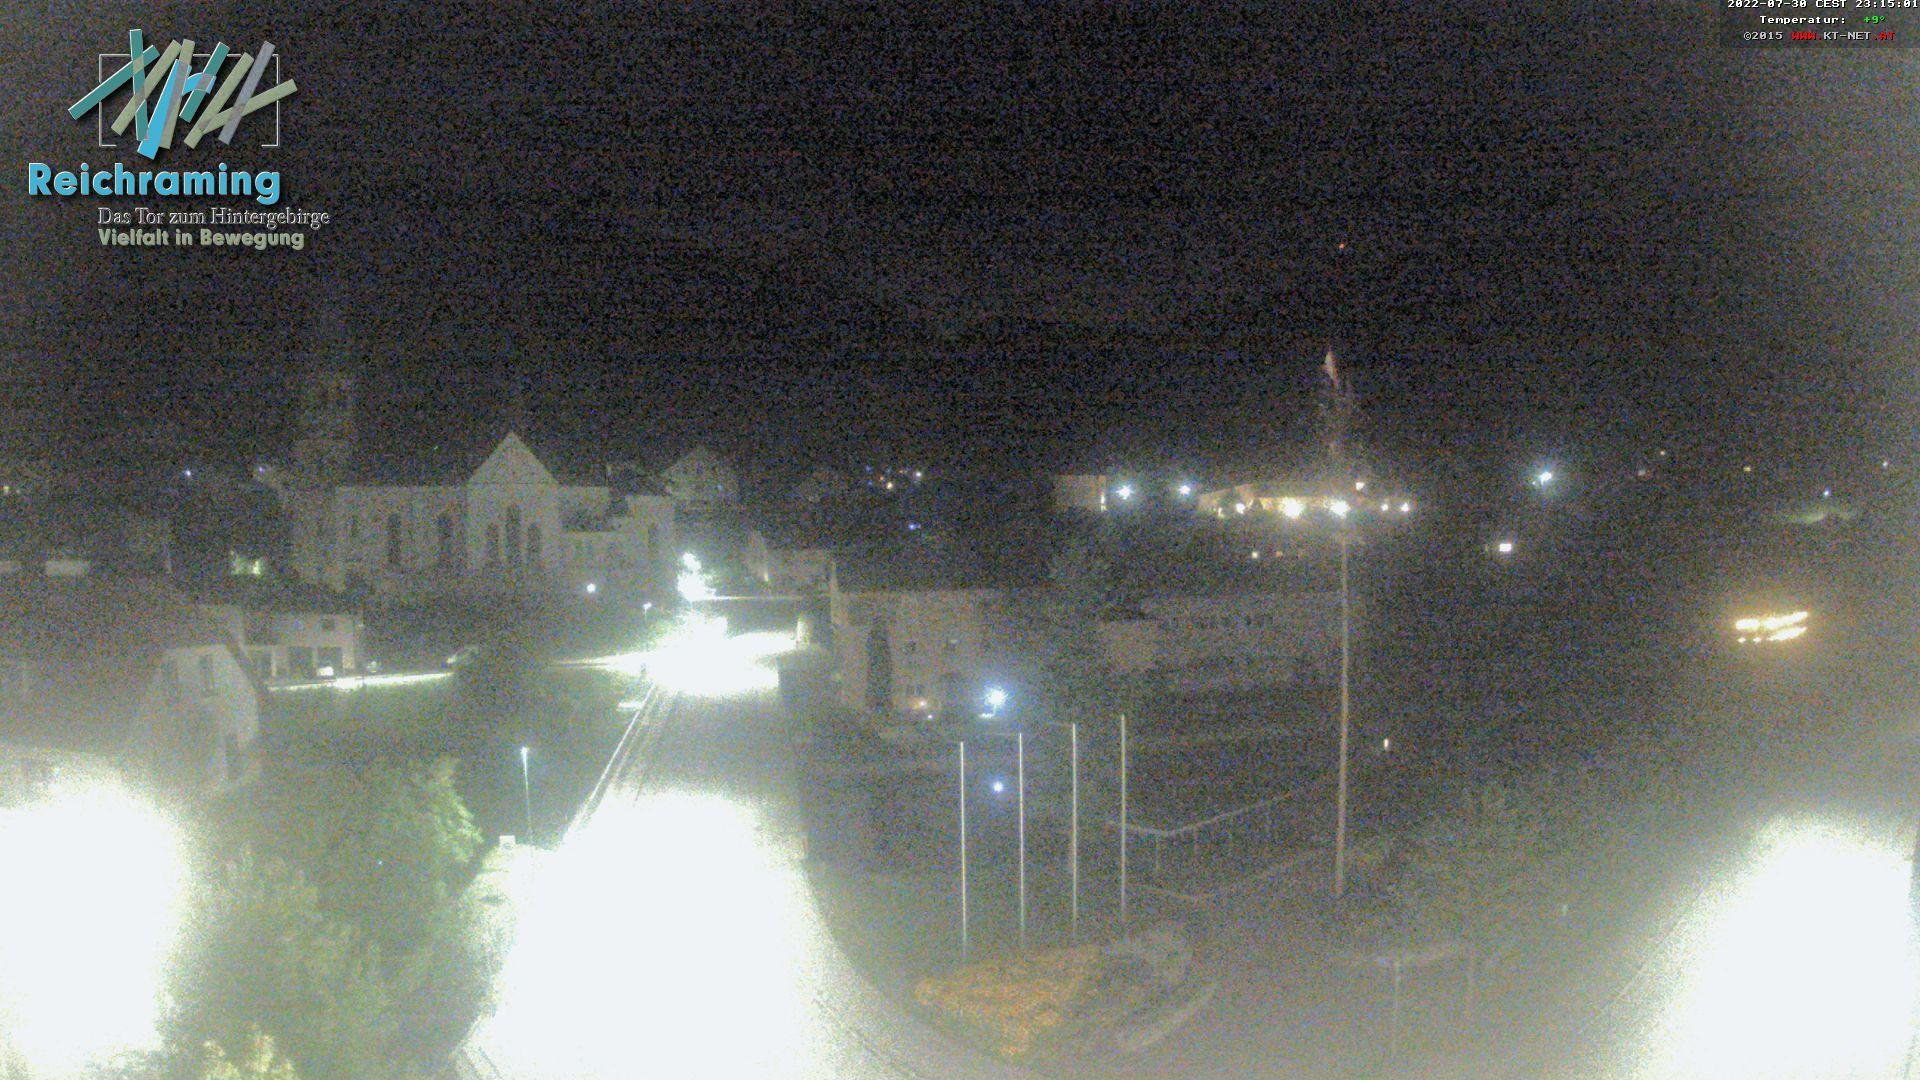 Webcam Reichraming › North-West: Schieferstein − Reichram